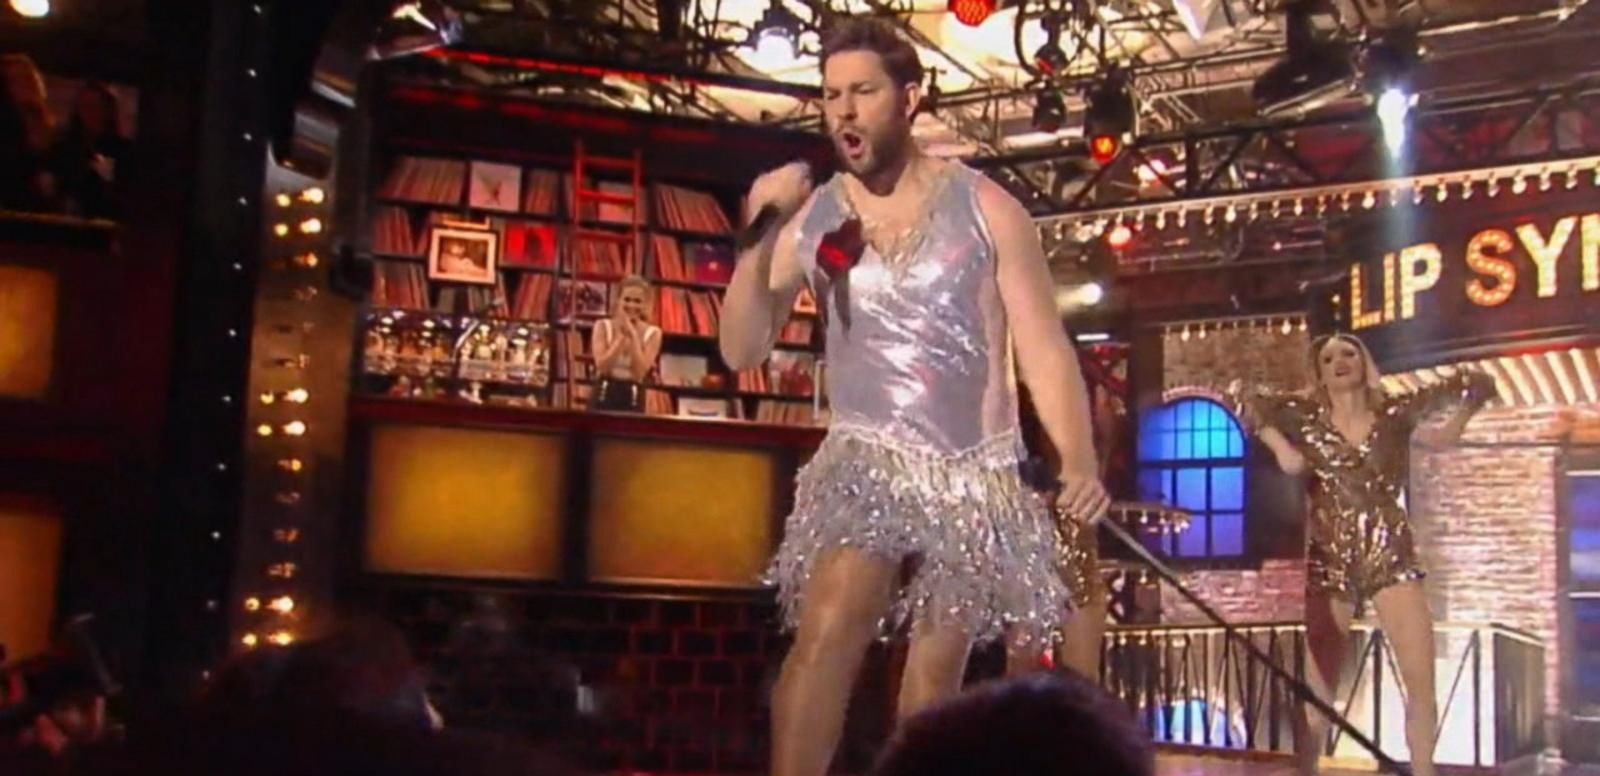 VIDEO: John Krasinski Channels Tina Turner During Lip Sync Performance